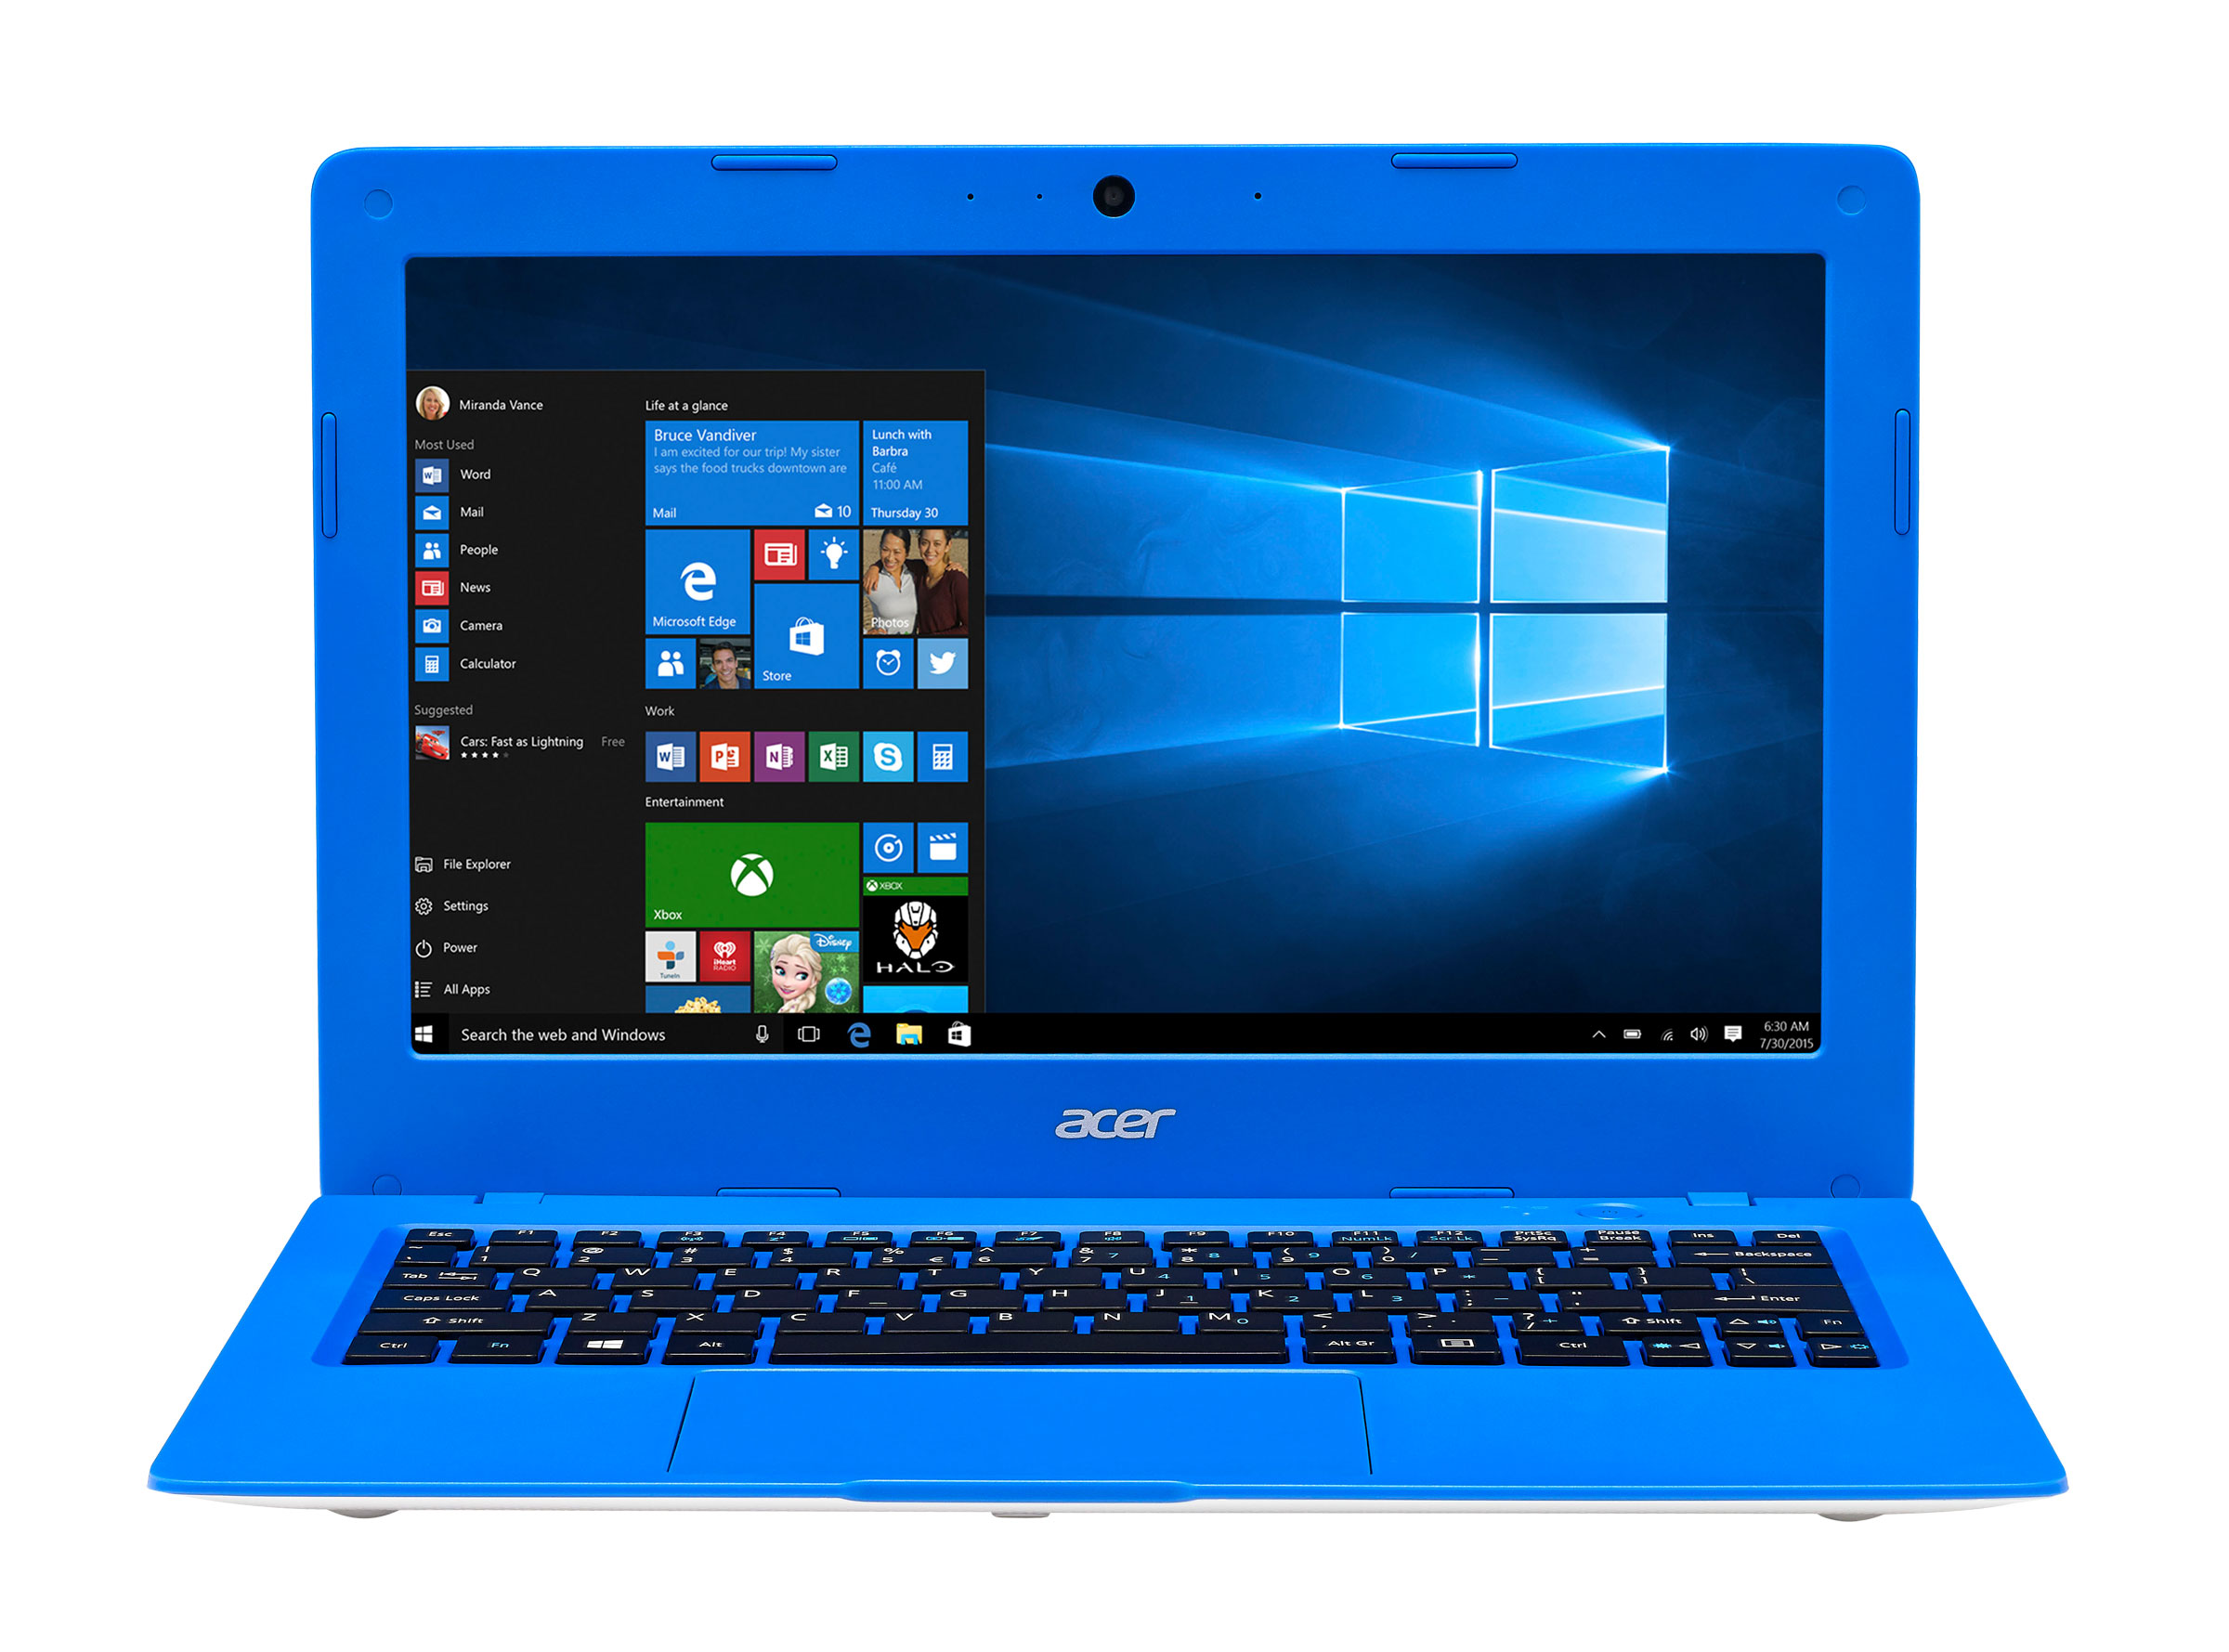 Acer Aspire One AO1131C620 Intel Celeron 32GB SSD 2GB RAM Cloudbook